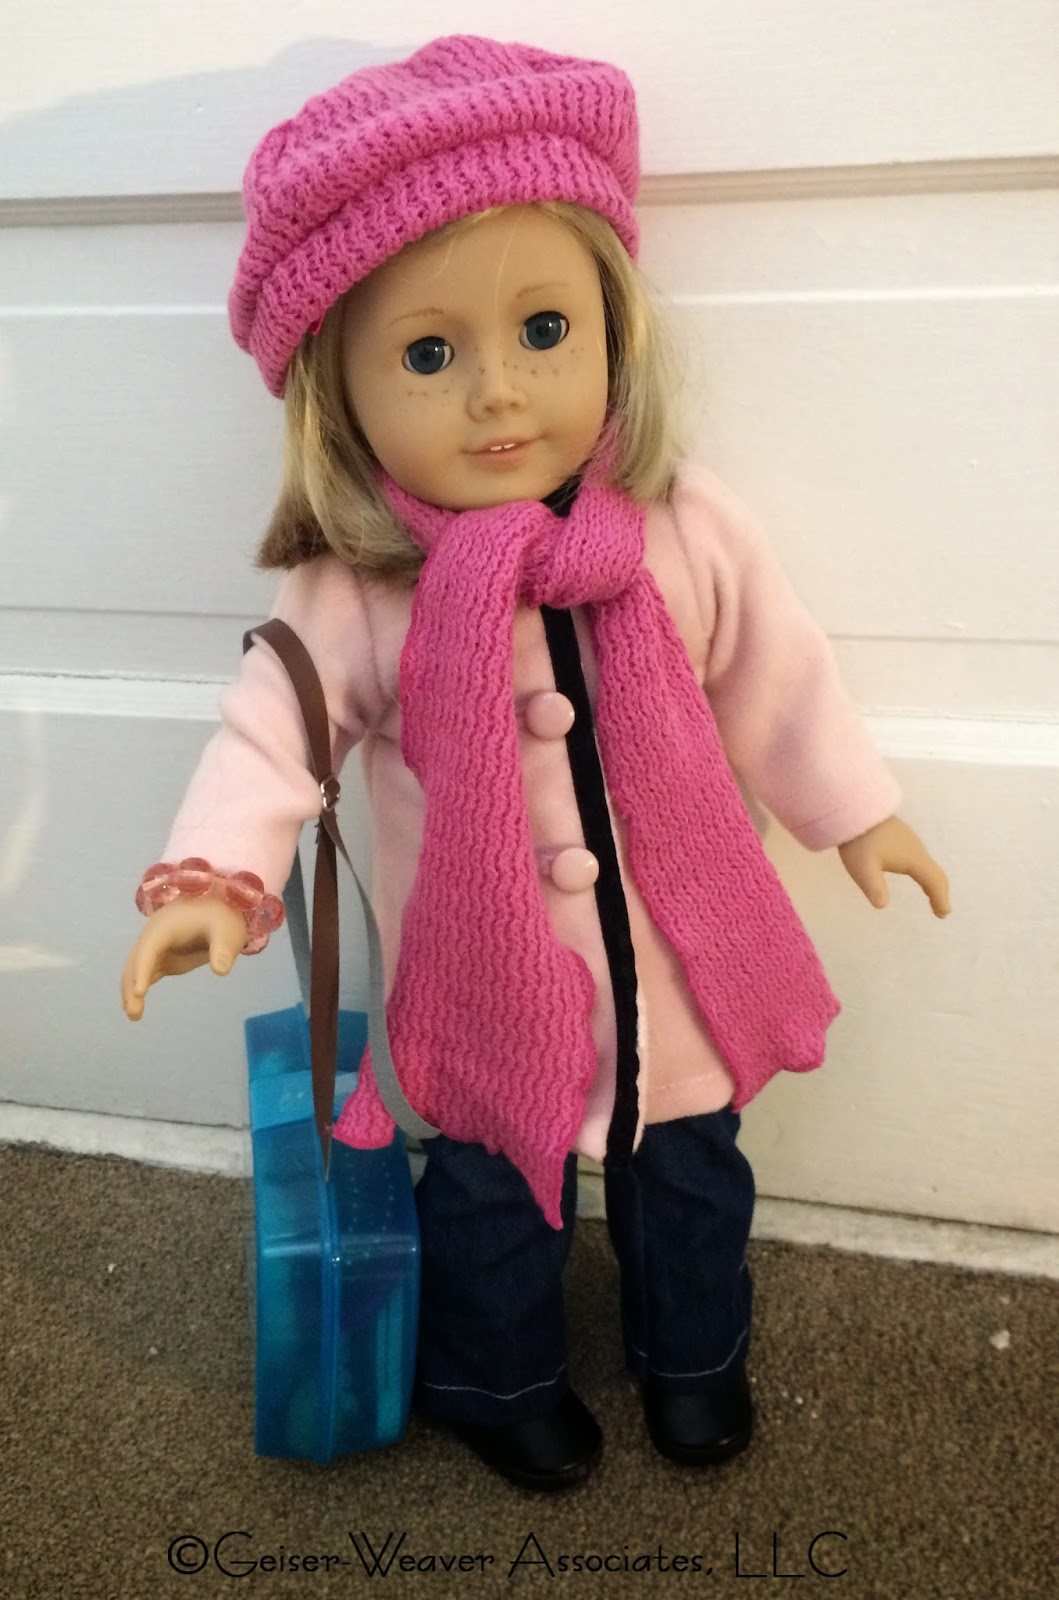 Kit is going on a traveling adventure- outfit by Geiser-Weaver Associates, LLC